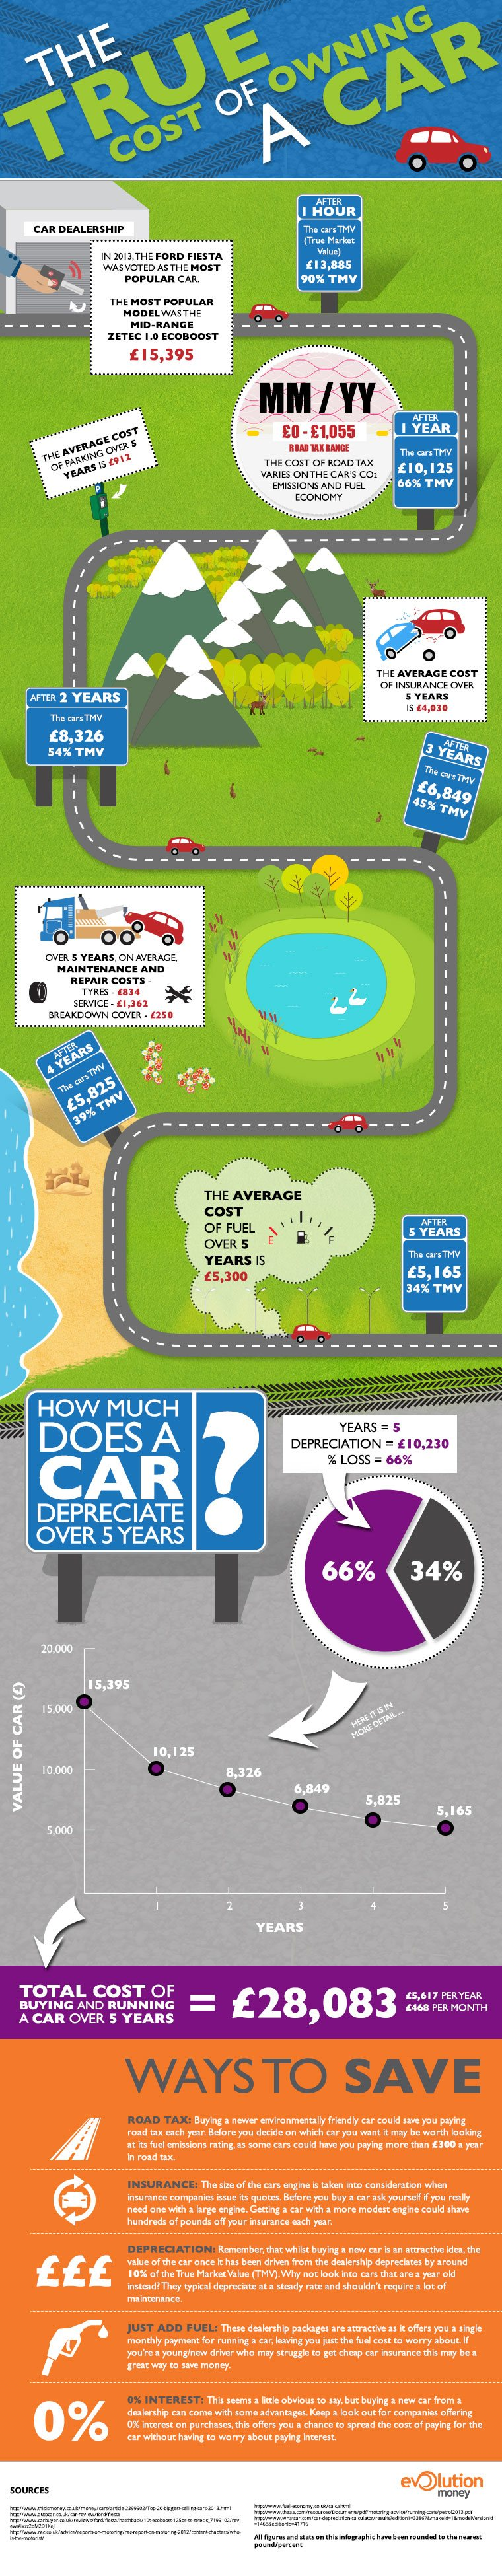 Cost of Owning a car Infographic